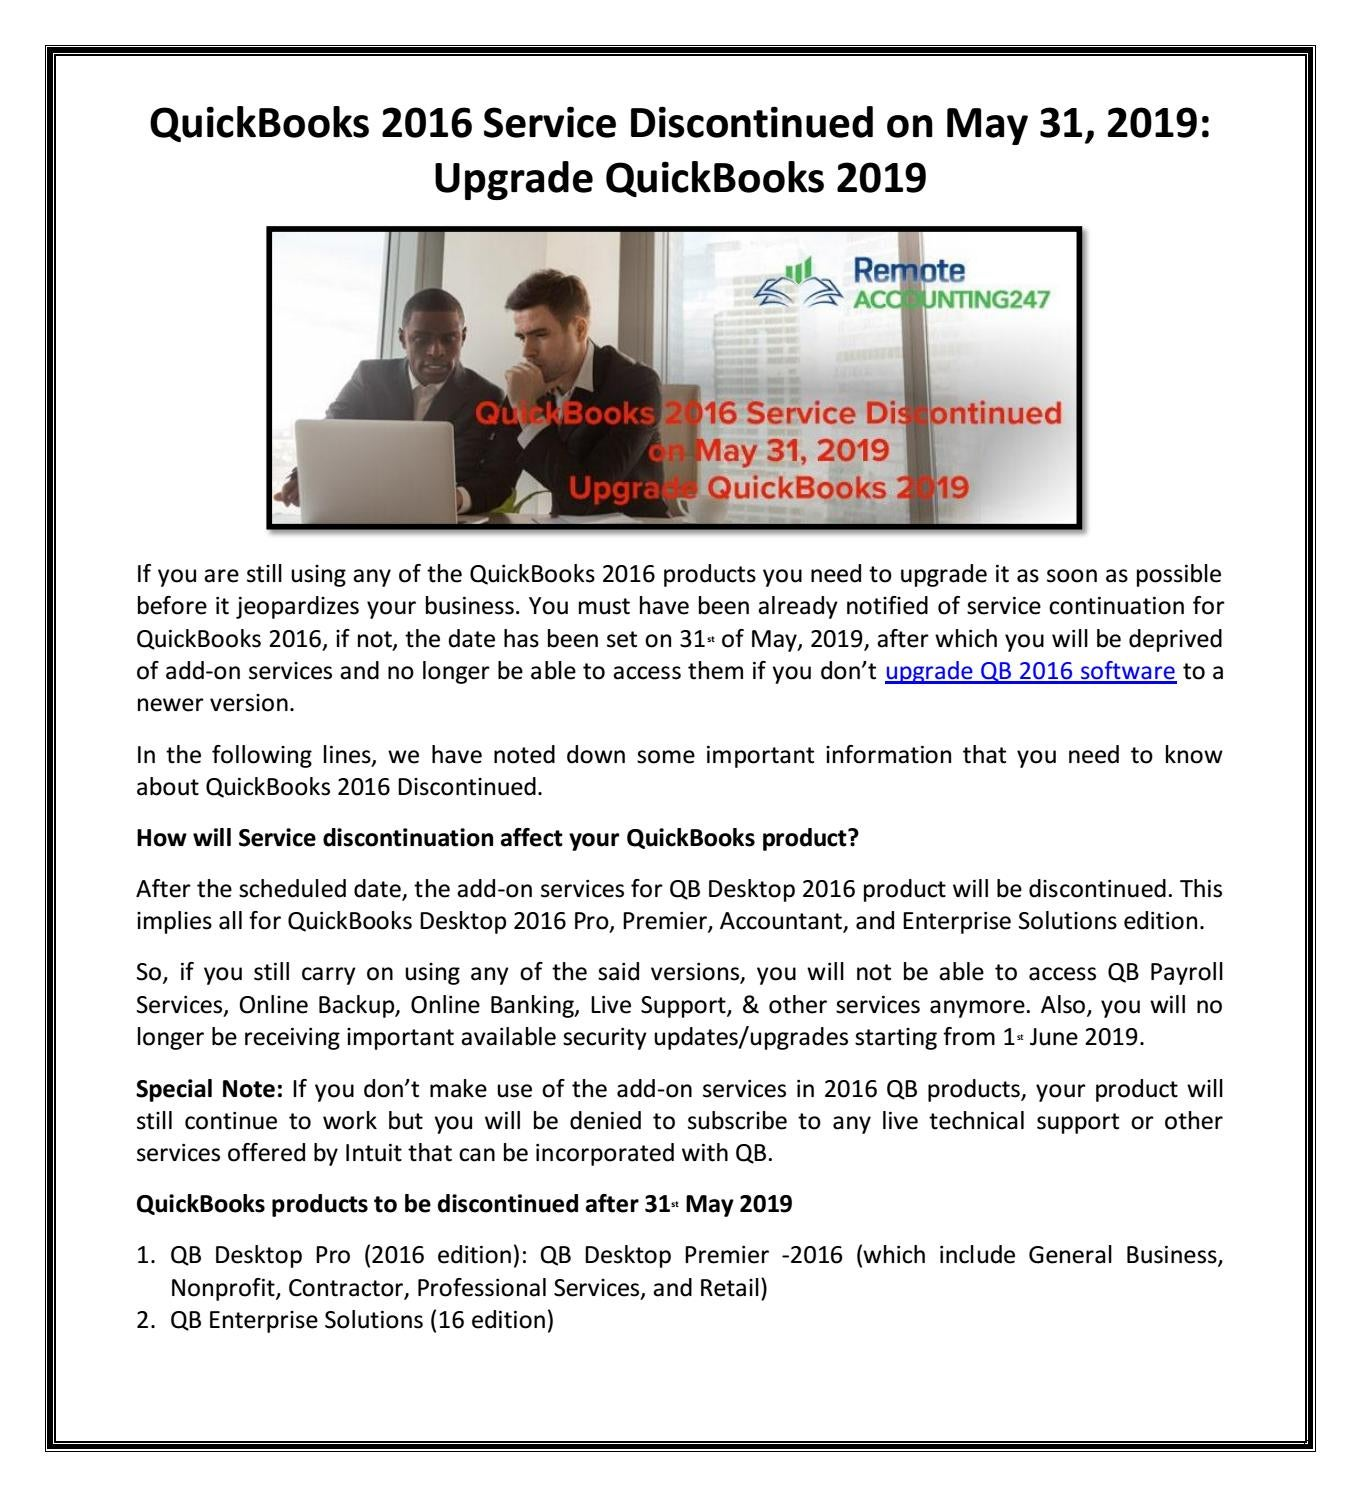 QuickBooks 2016 Service Discontinued on May 31, 2019